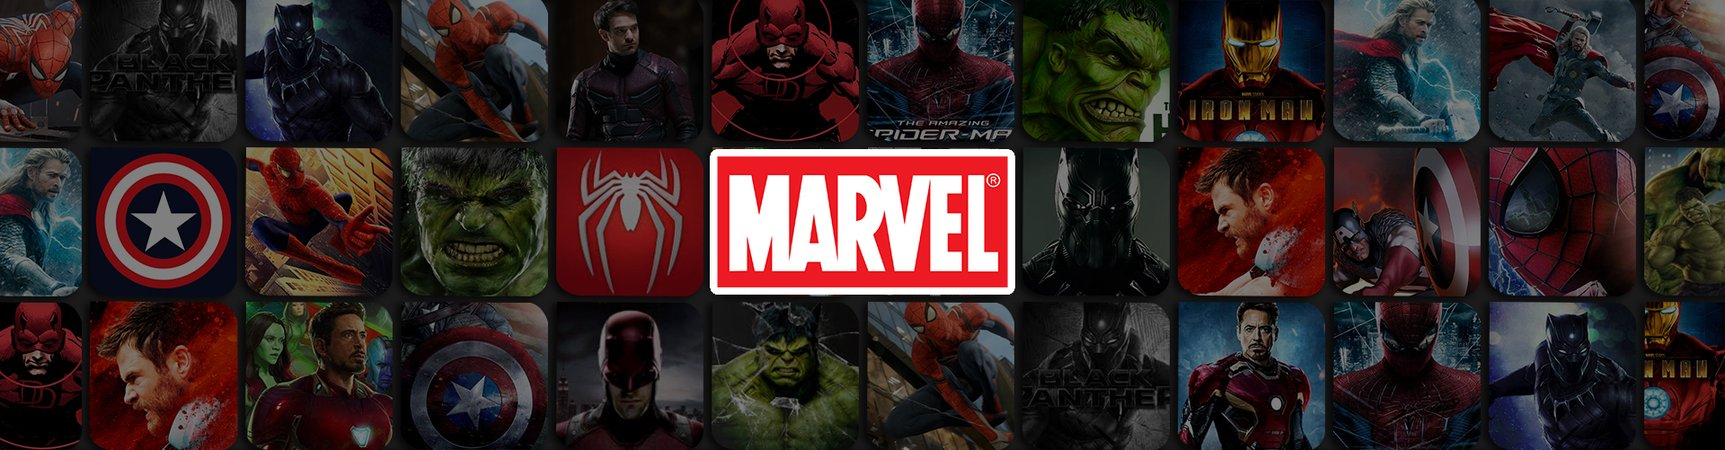 MARVEL Cushion Covers